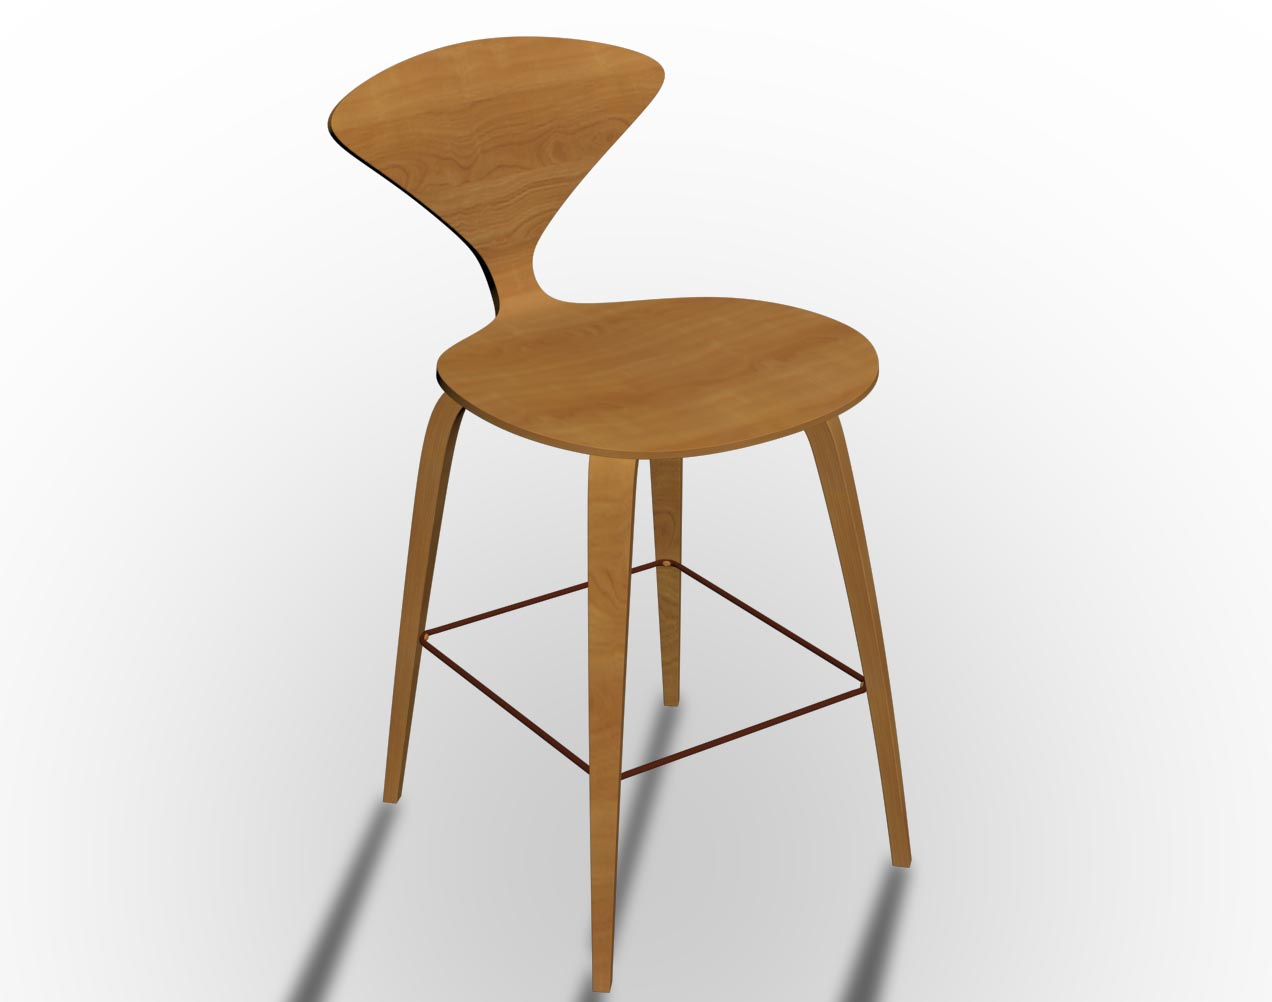 3ds max chair model free download